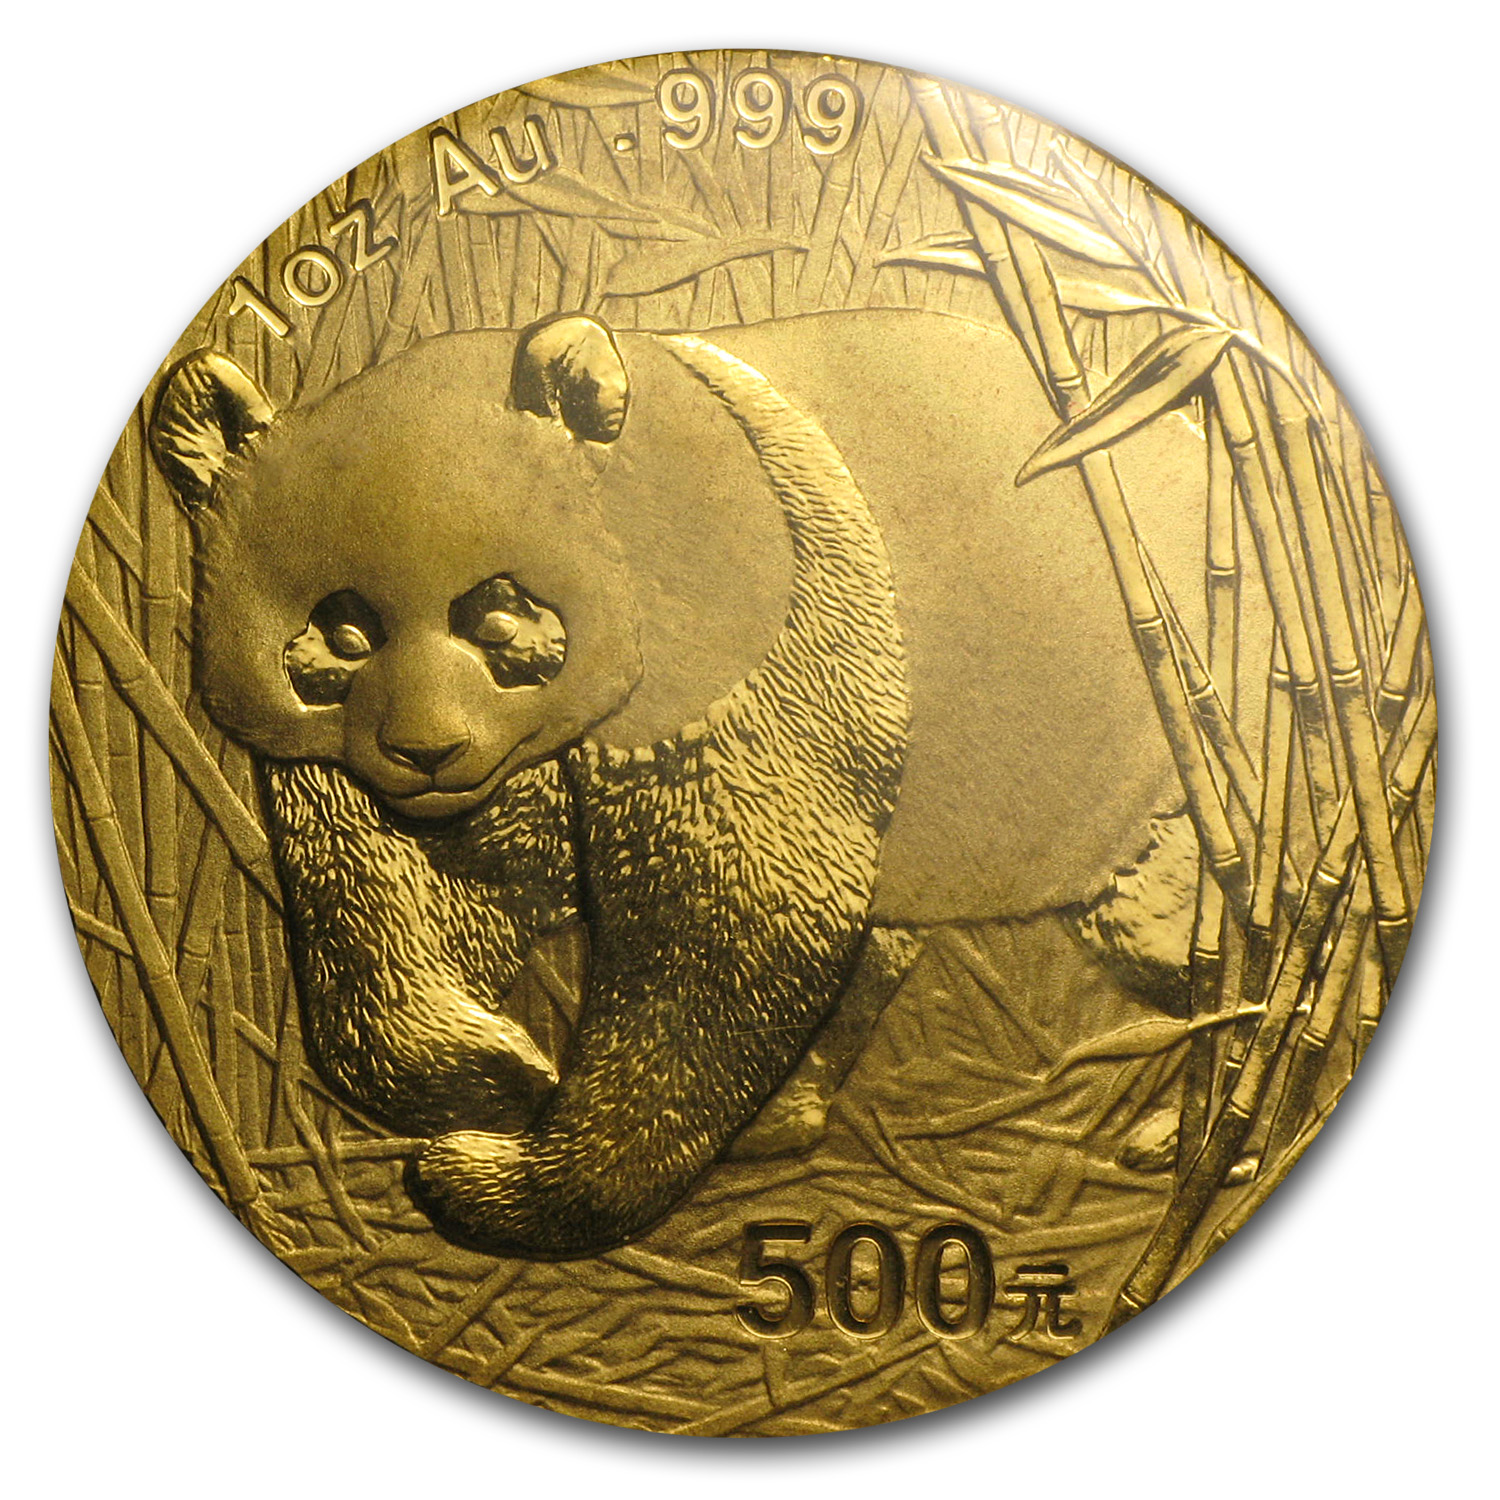 2001 China 1 oz Gold Panda BU (Sealed)